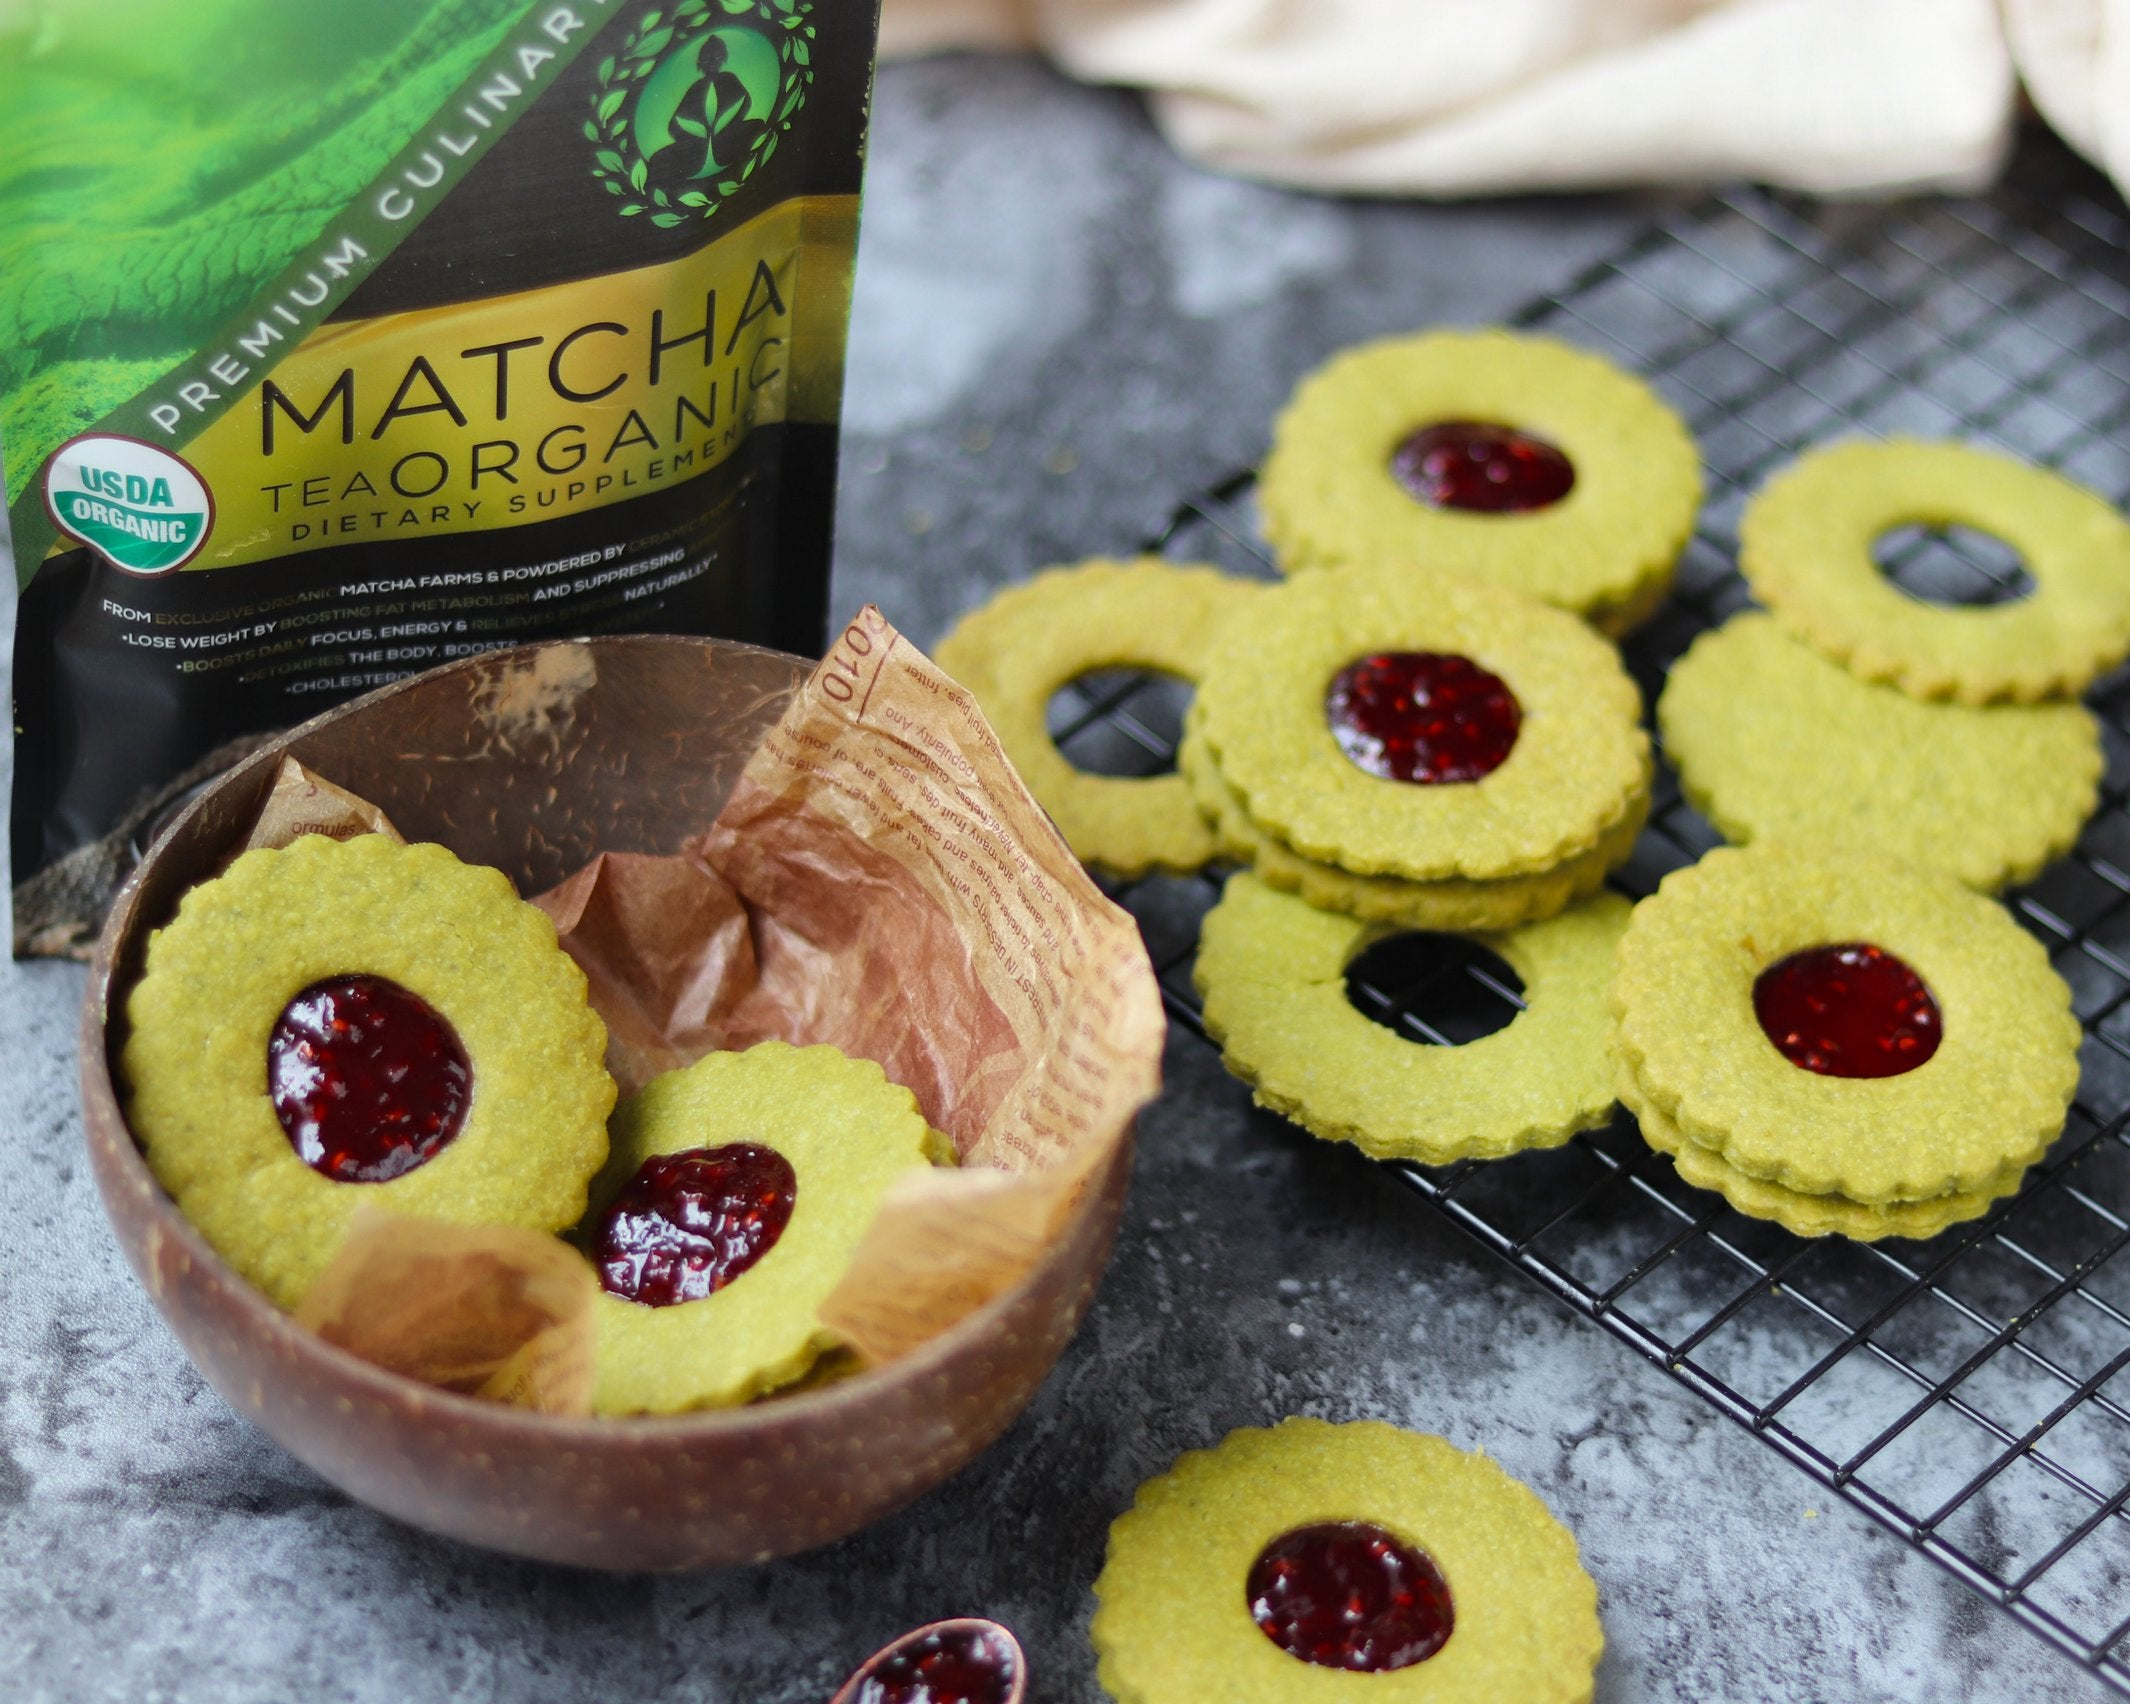 Matcha Shortbread Cookies - Final Product